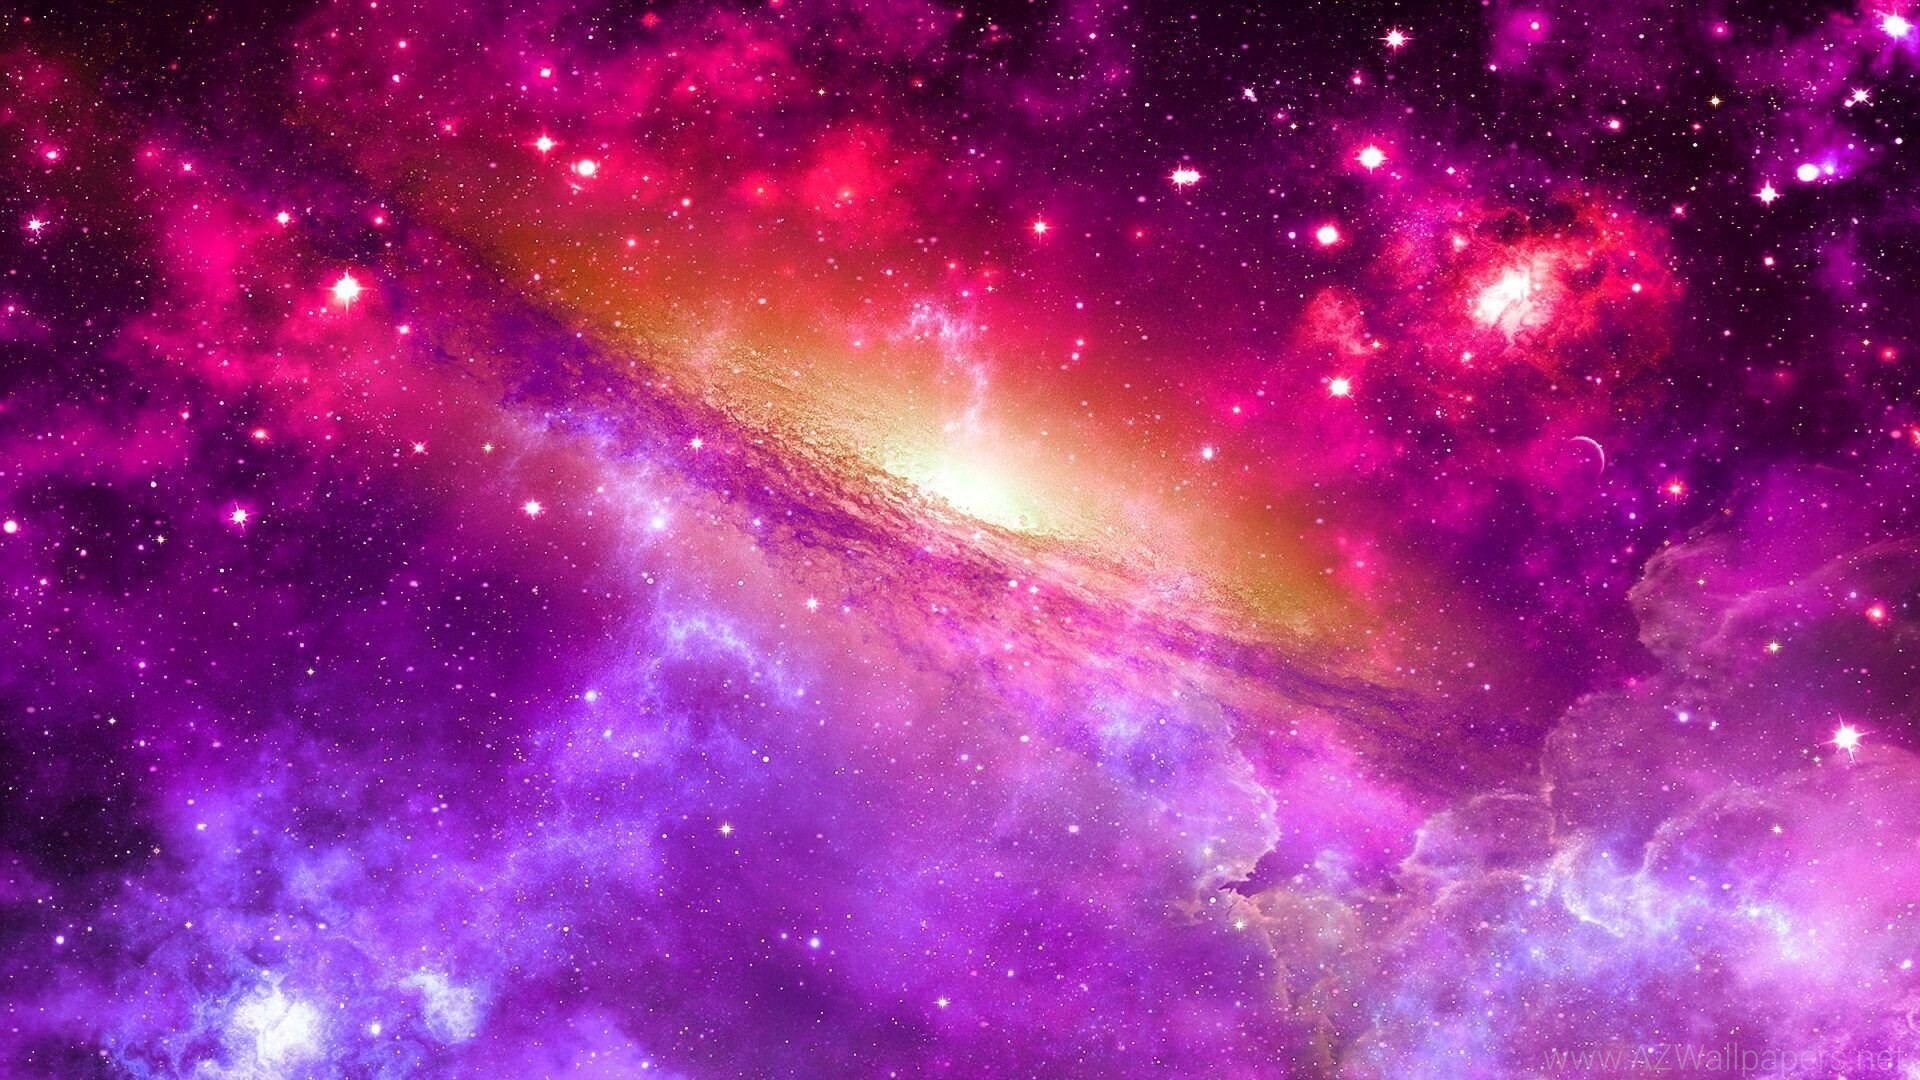 1920x1080 Download  HD Wallpapers Galaxy Helix Cloud Pink Amazing .